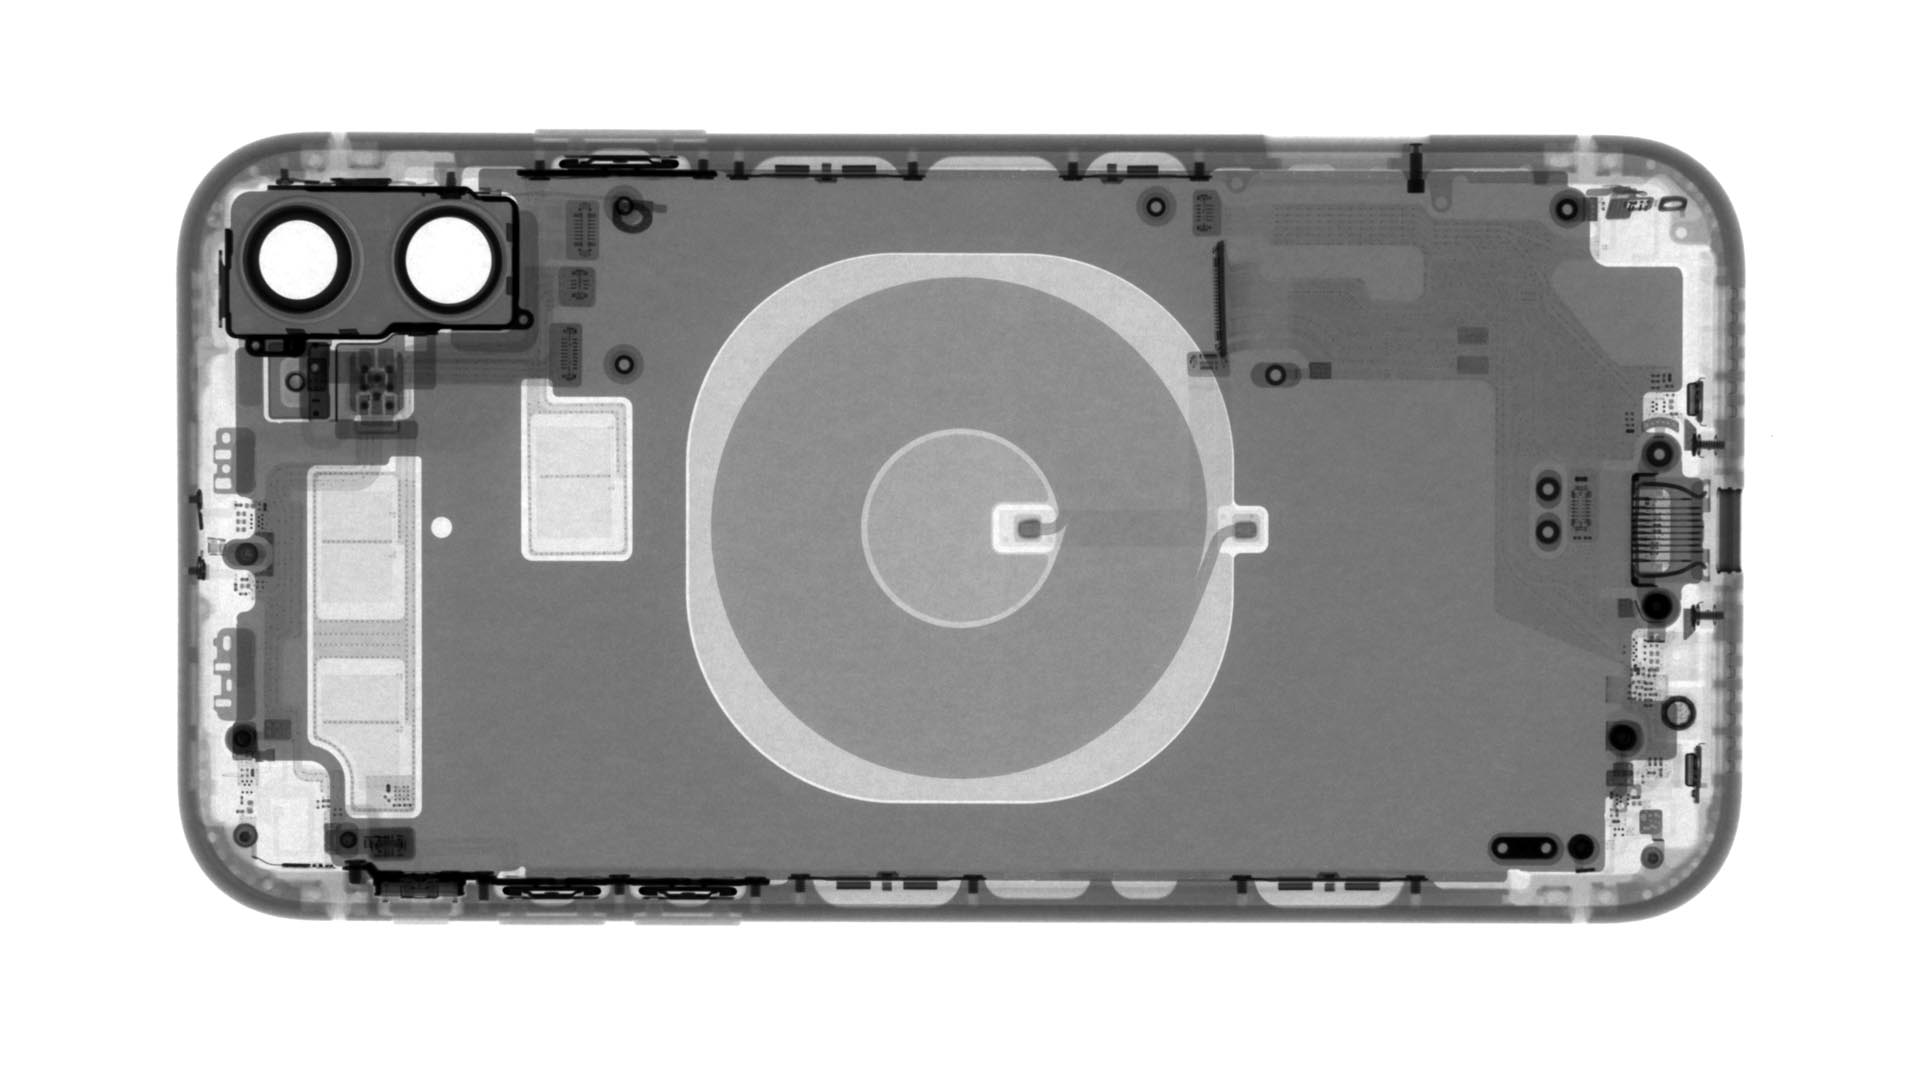 An X-ray of the empty back case of an iPhone 11.